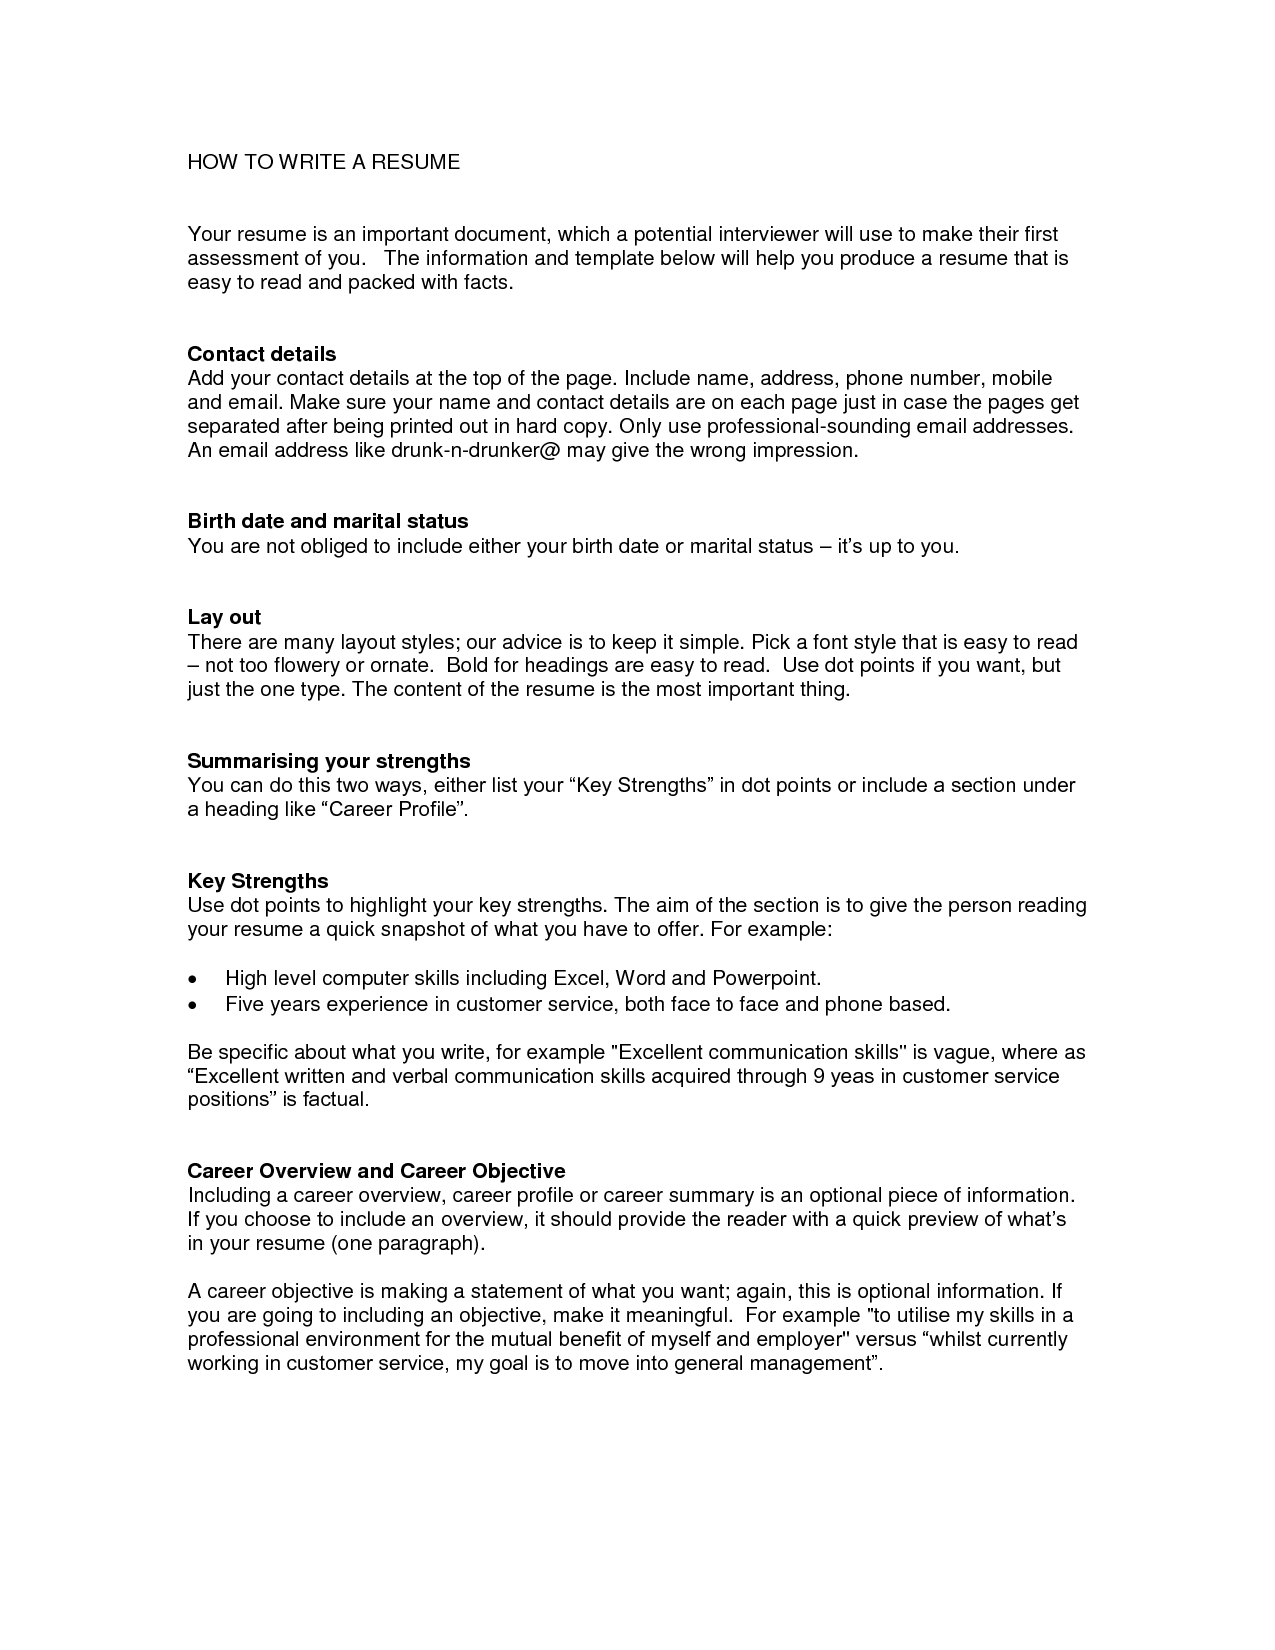 Help To Write A Resume Top Rated Writing Service